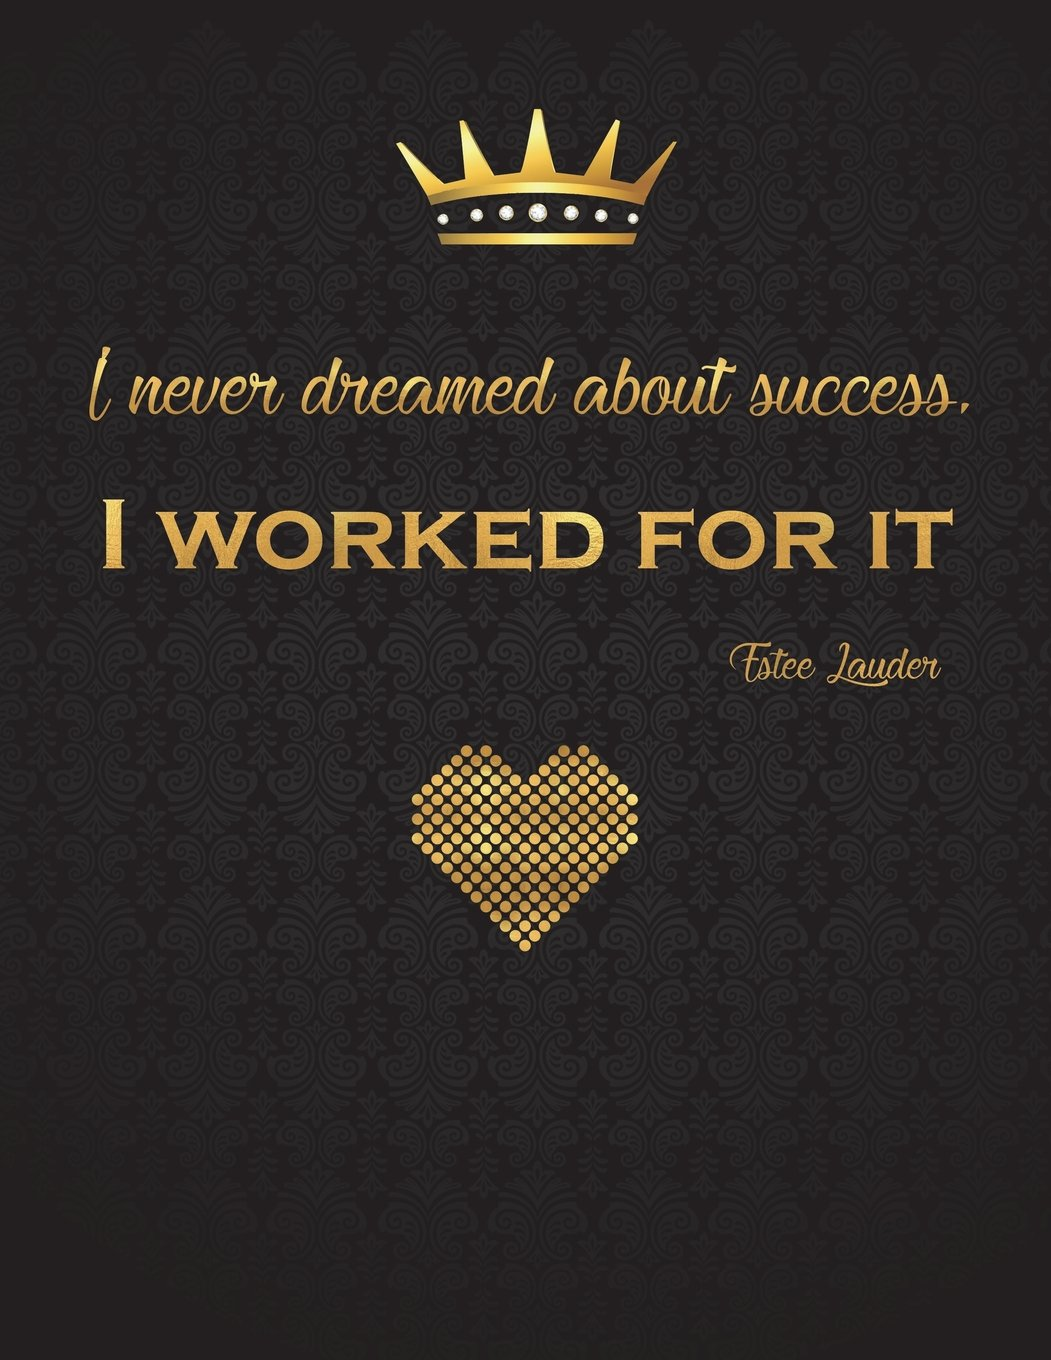 I Never Dreamed About Success. I Worked For It (Estee Lauder): Bullet Journal, Gold Lettering Cover, XL 8.5x11, Black Soft Cover, Matte Finish, Journal for Women (Notebooks and Journals) pdf epub